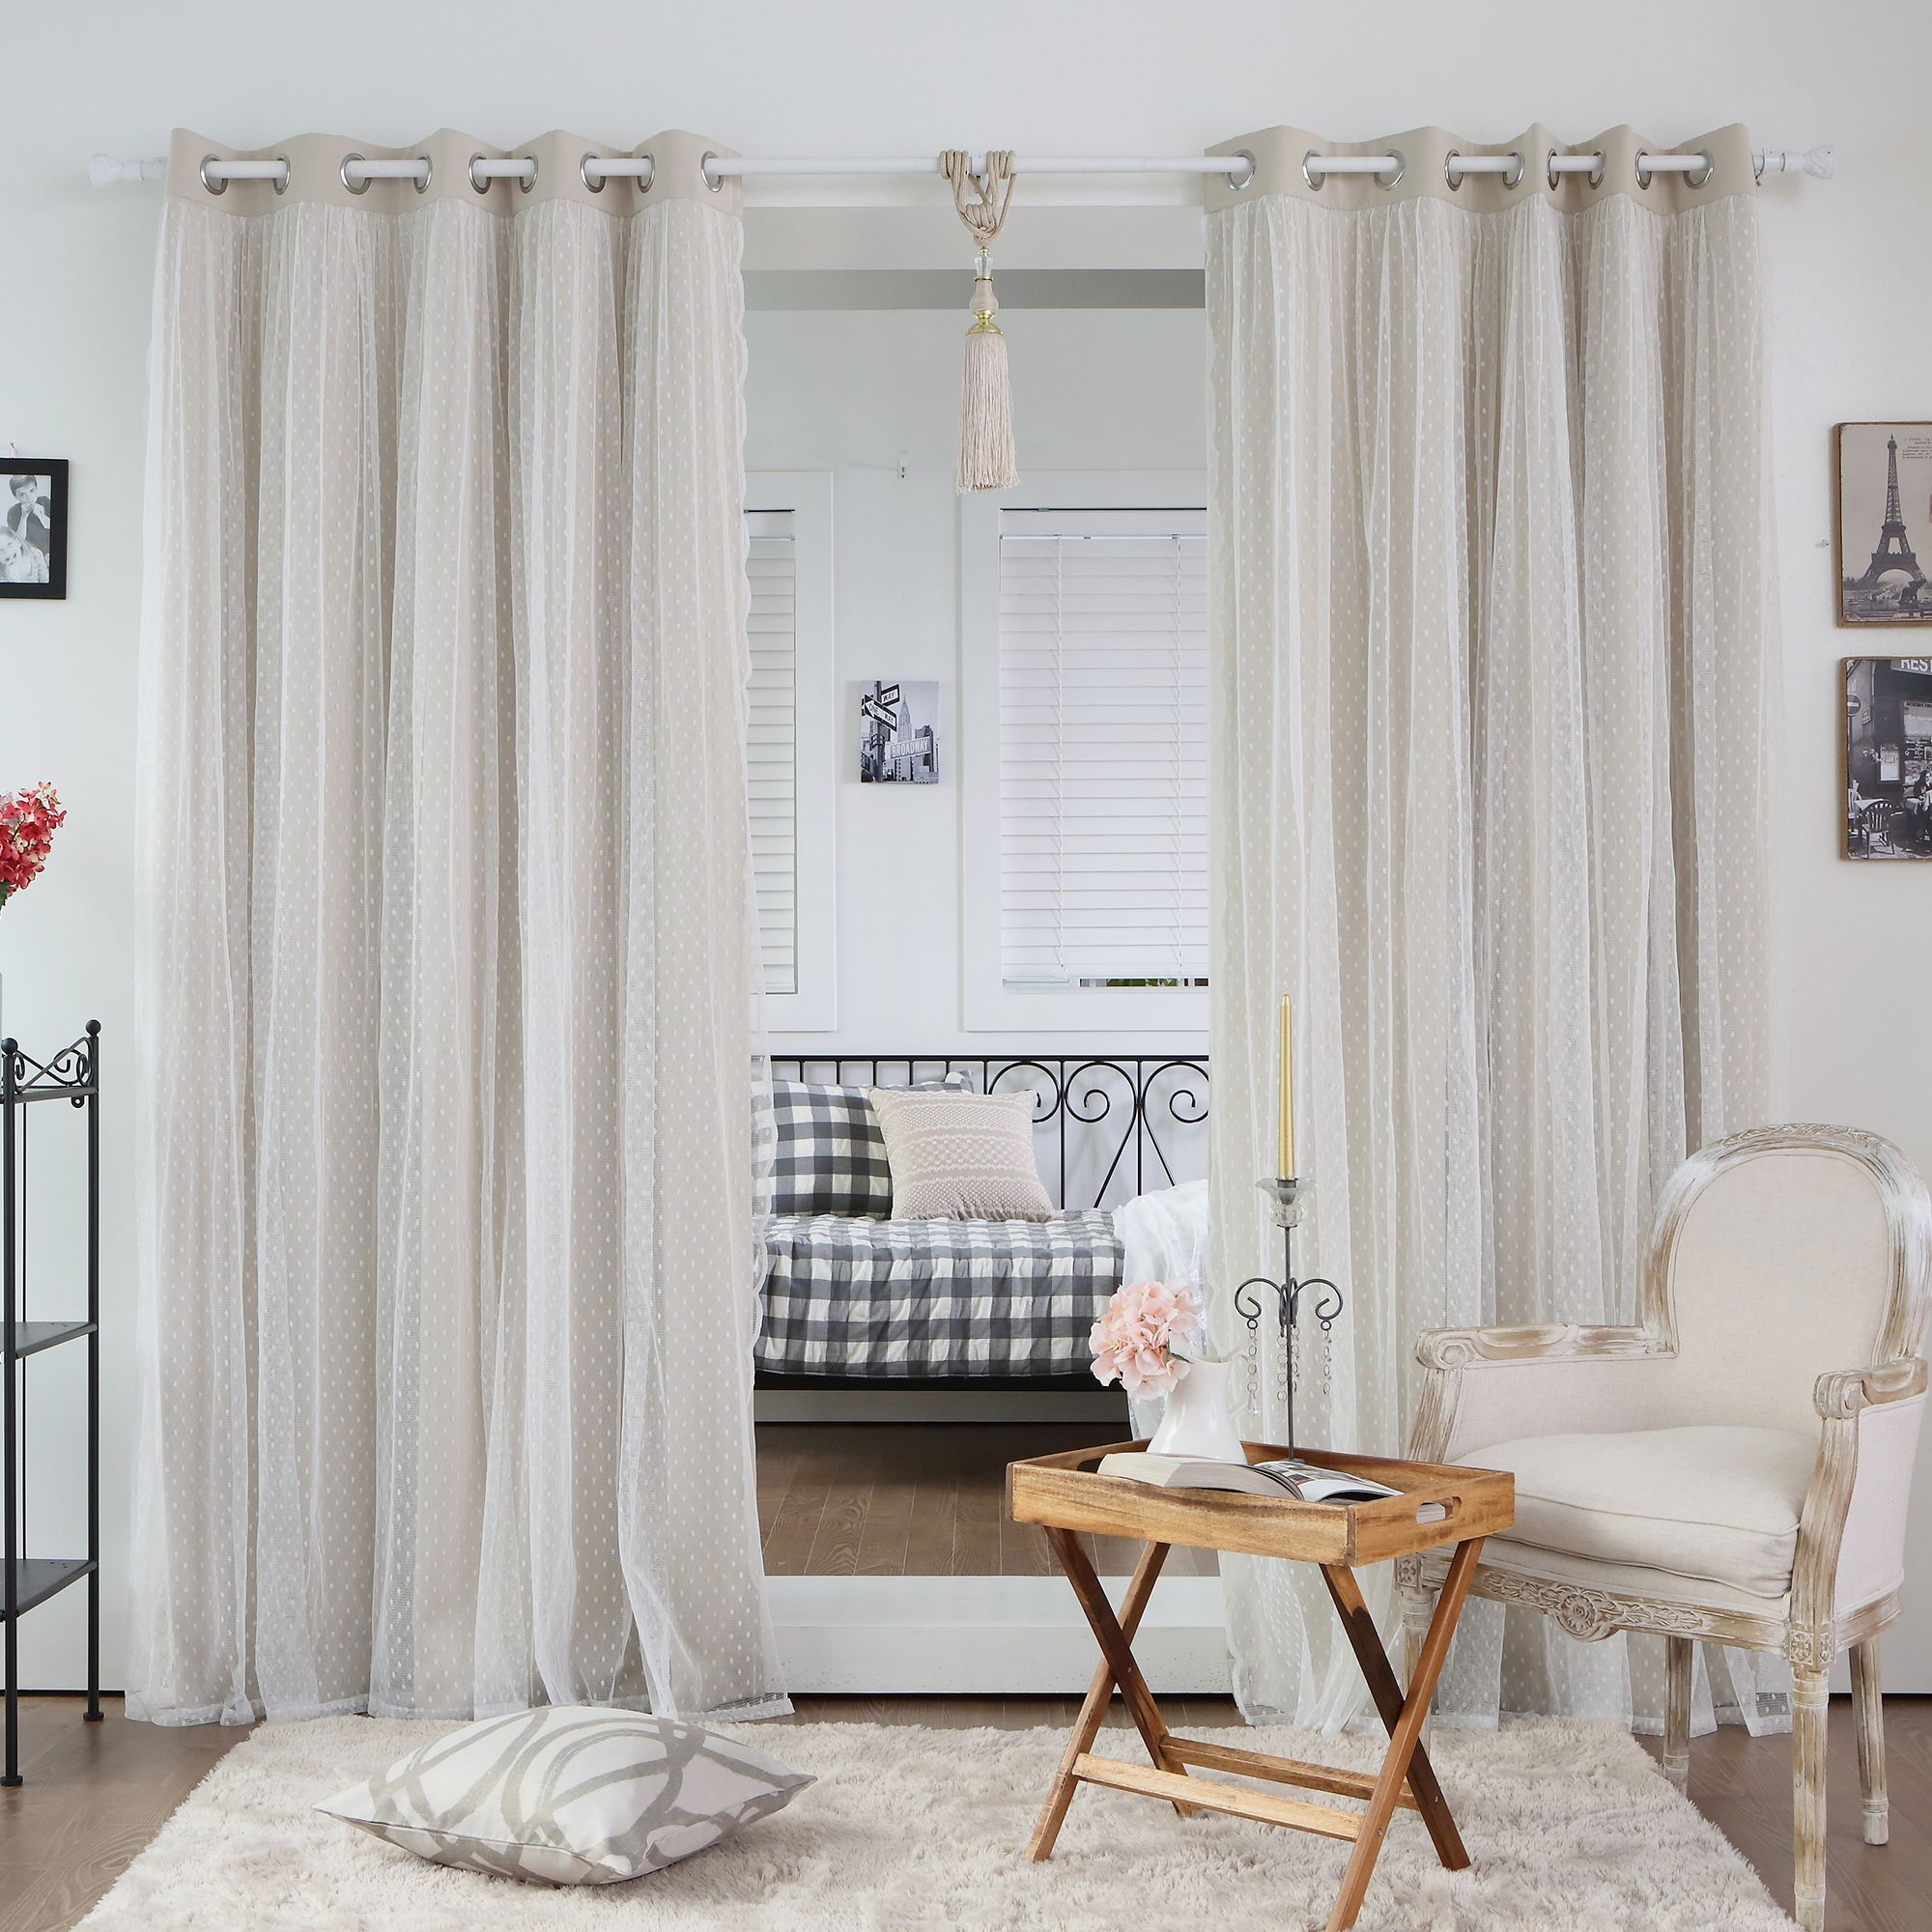 Inc faux silk blackout curtain set of 2 light pink hautelook - Stylish And Functional These Curtains Are Ideal For Late Sleepers And Shift Workers Theyblock